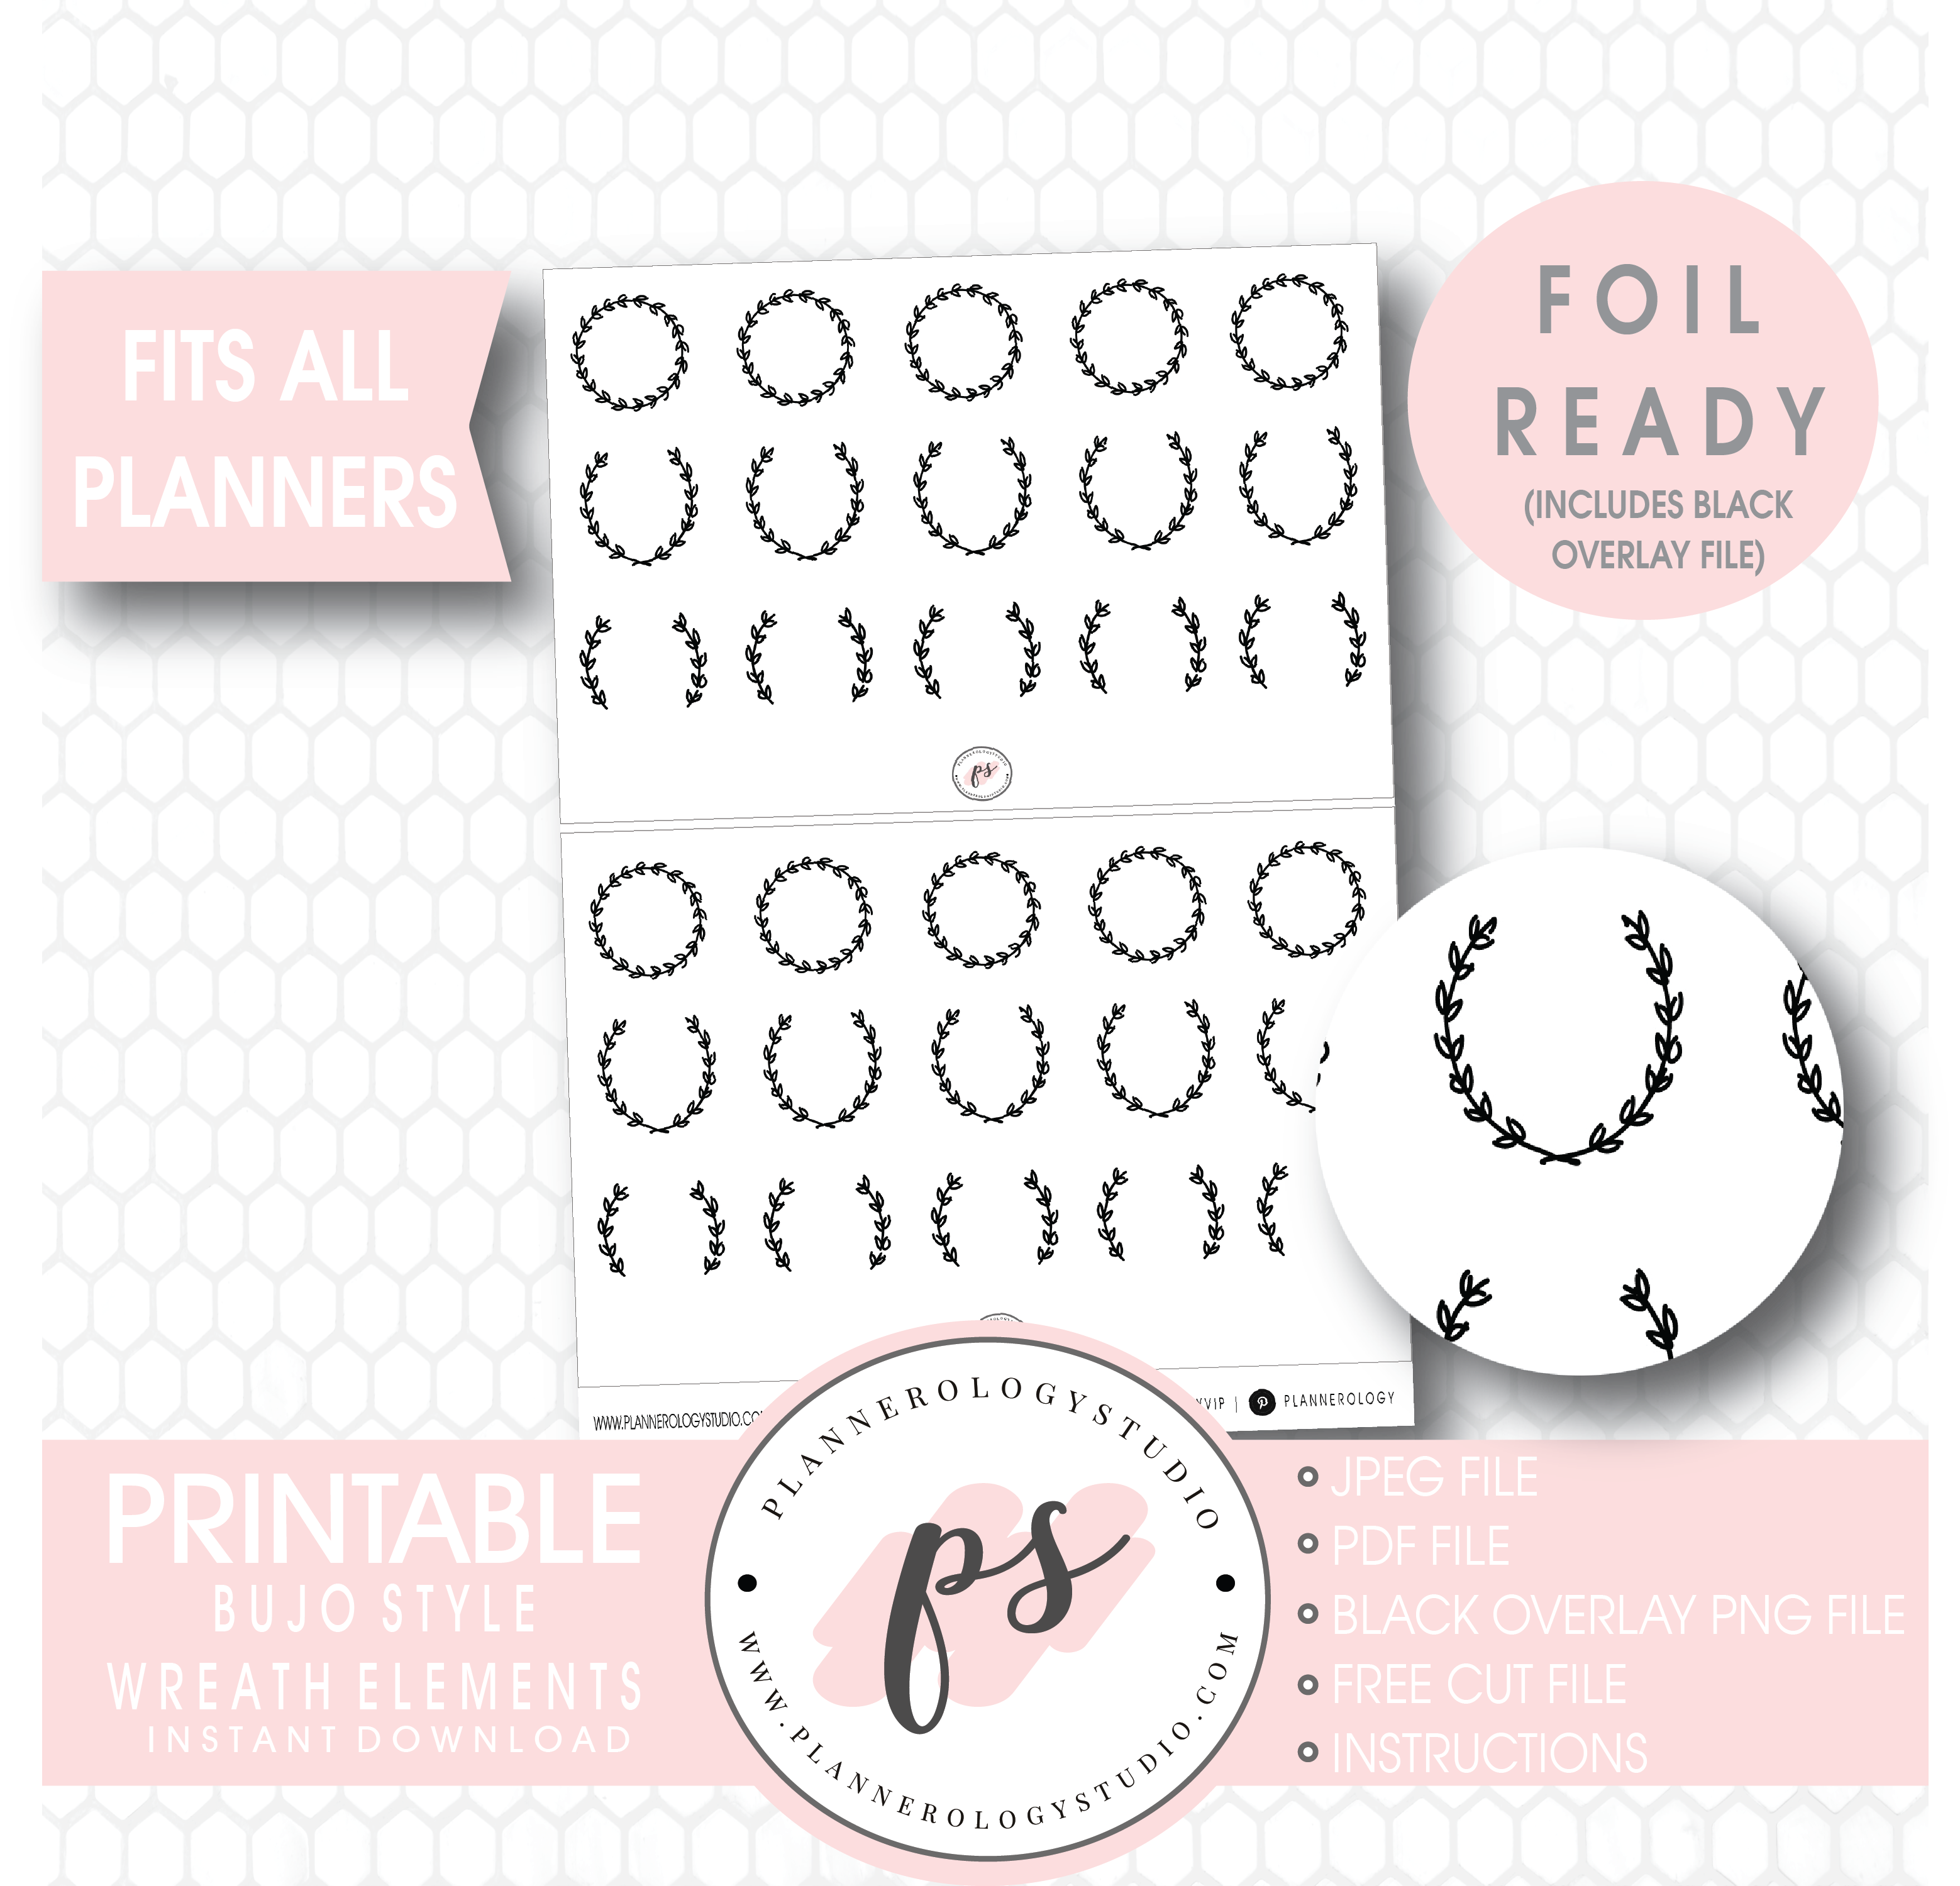 picture regarding Wreath Printable referred to as Attractive Wreath Variables Electronic Printable Planner Stickers (Foil Prepared)